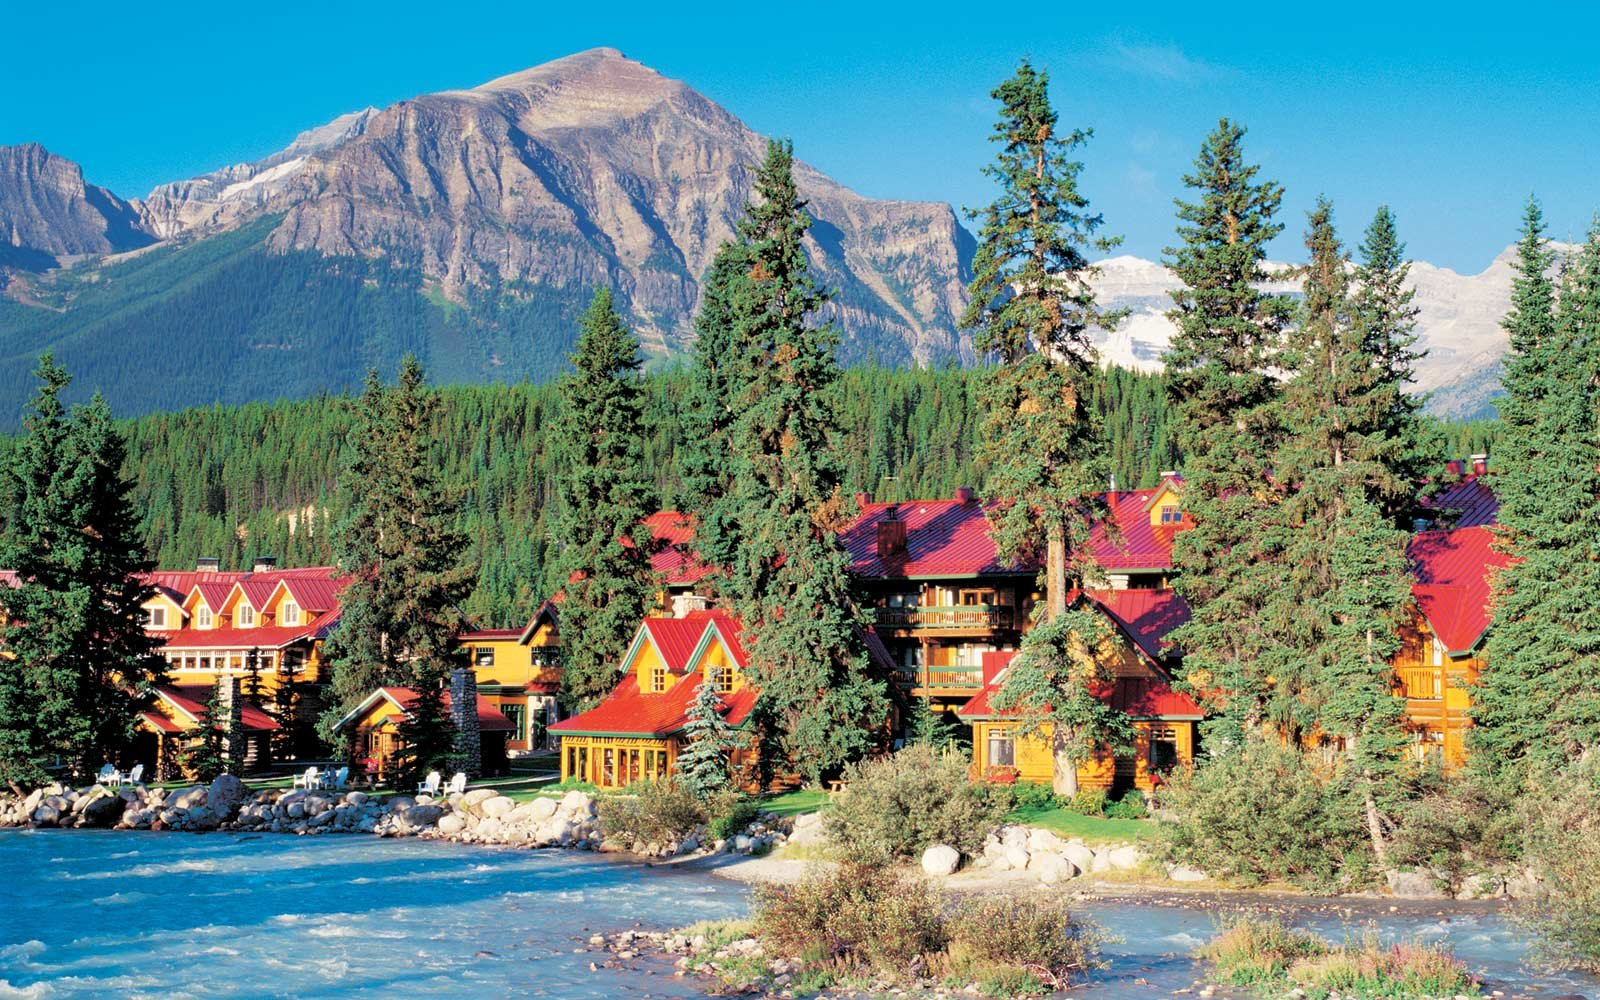 3. Post Hotel & Spa, Lake Louise, Alberta